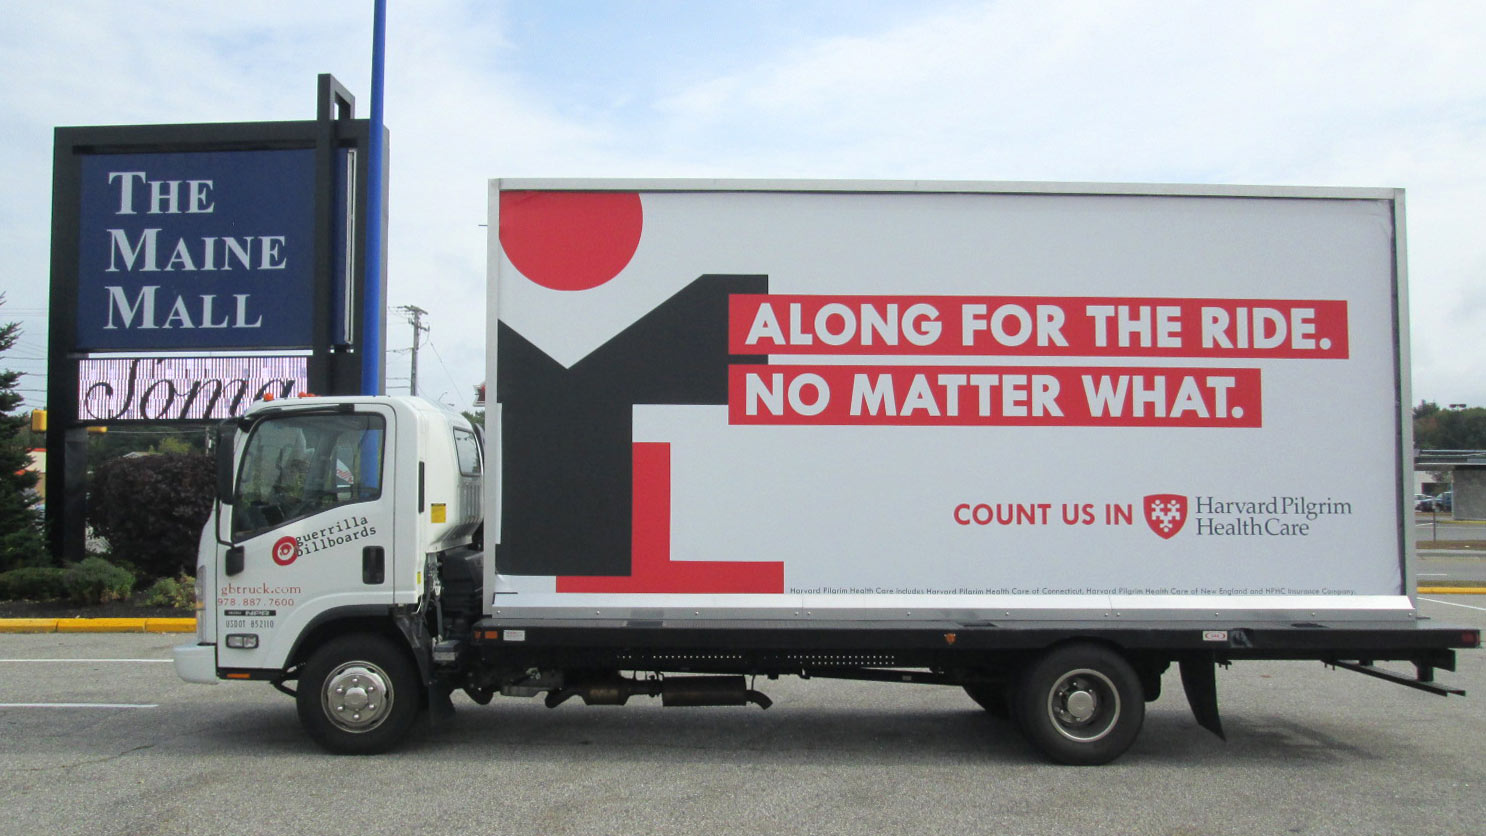 Billboard truck stopped at the Maine Mall in South Portland ME